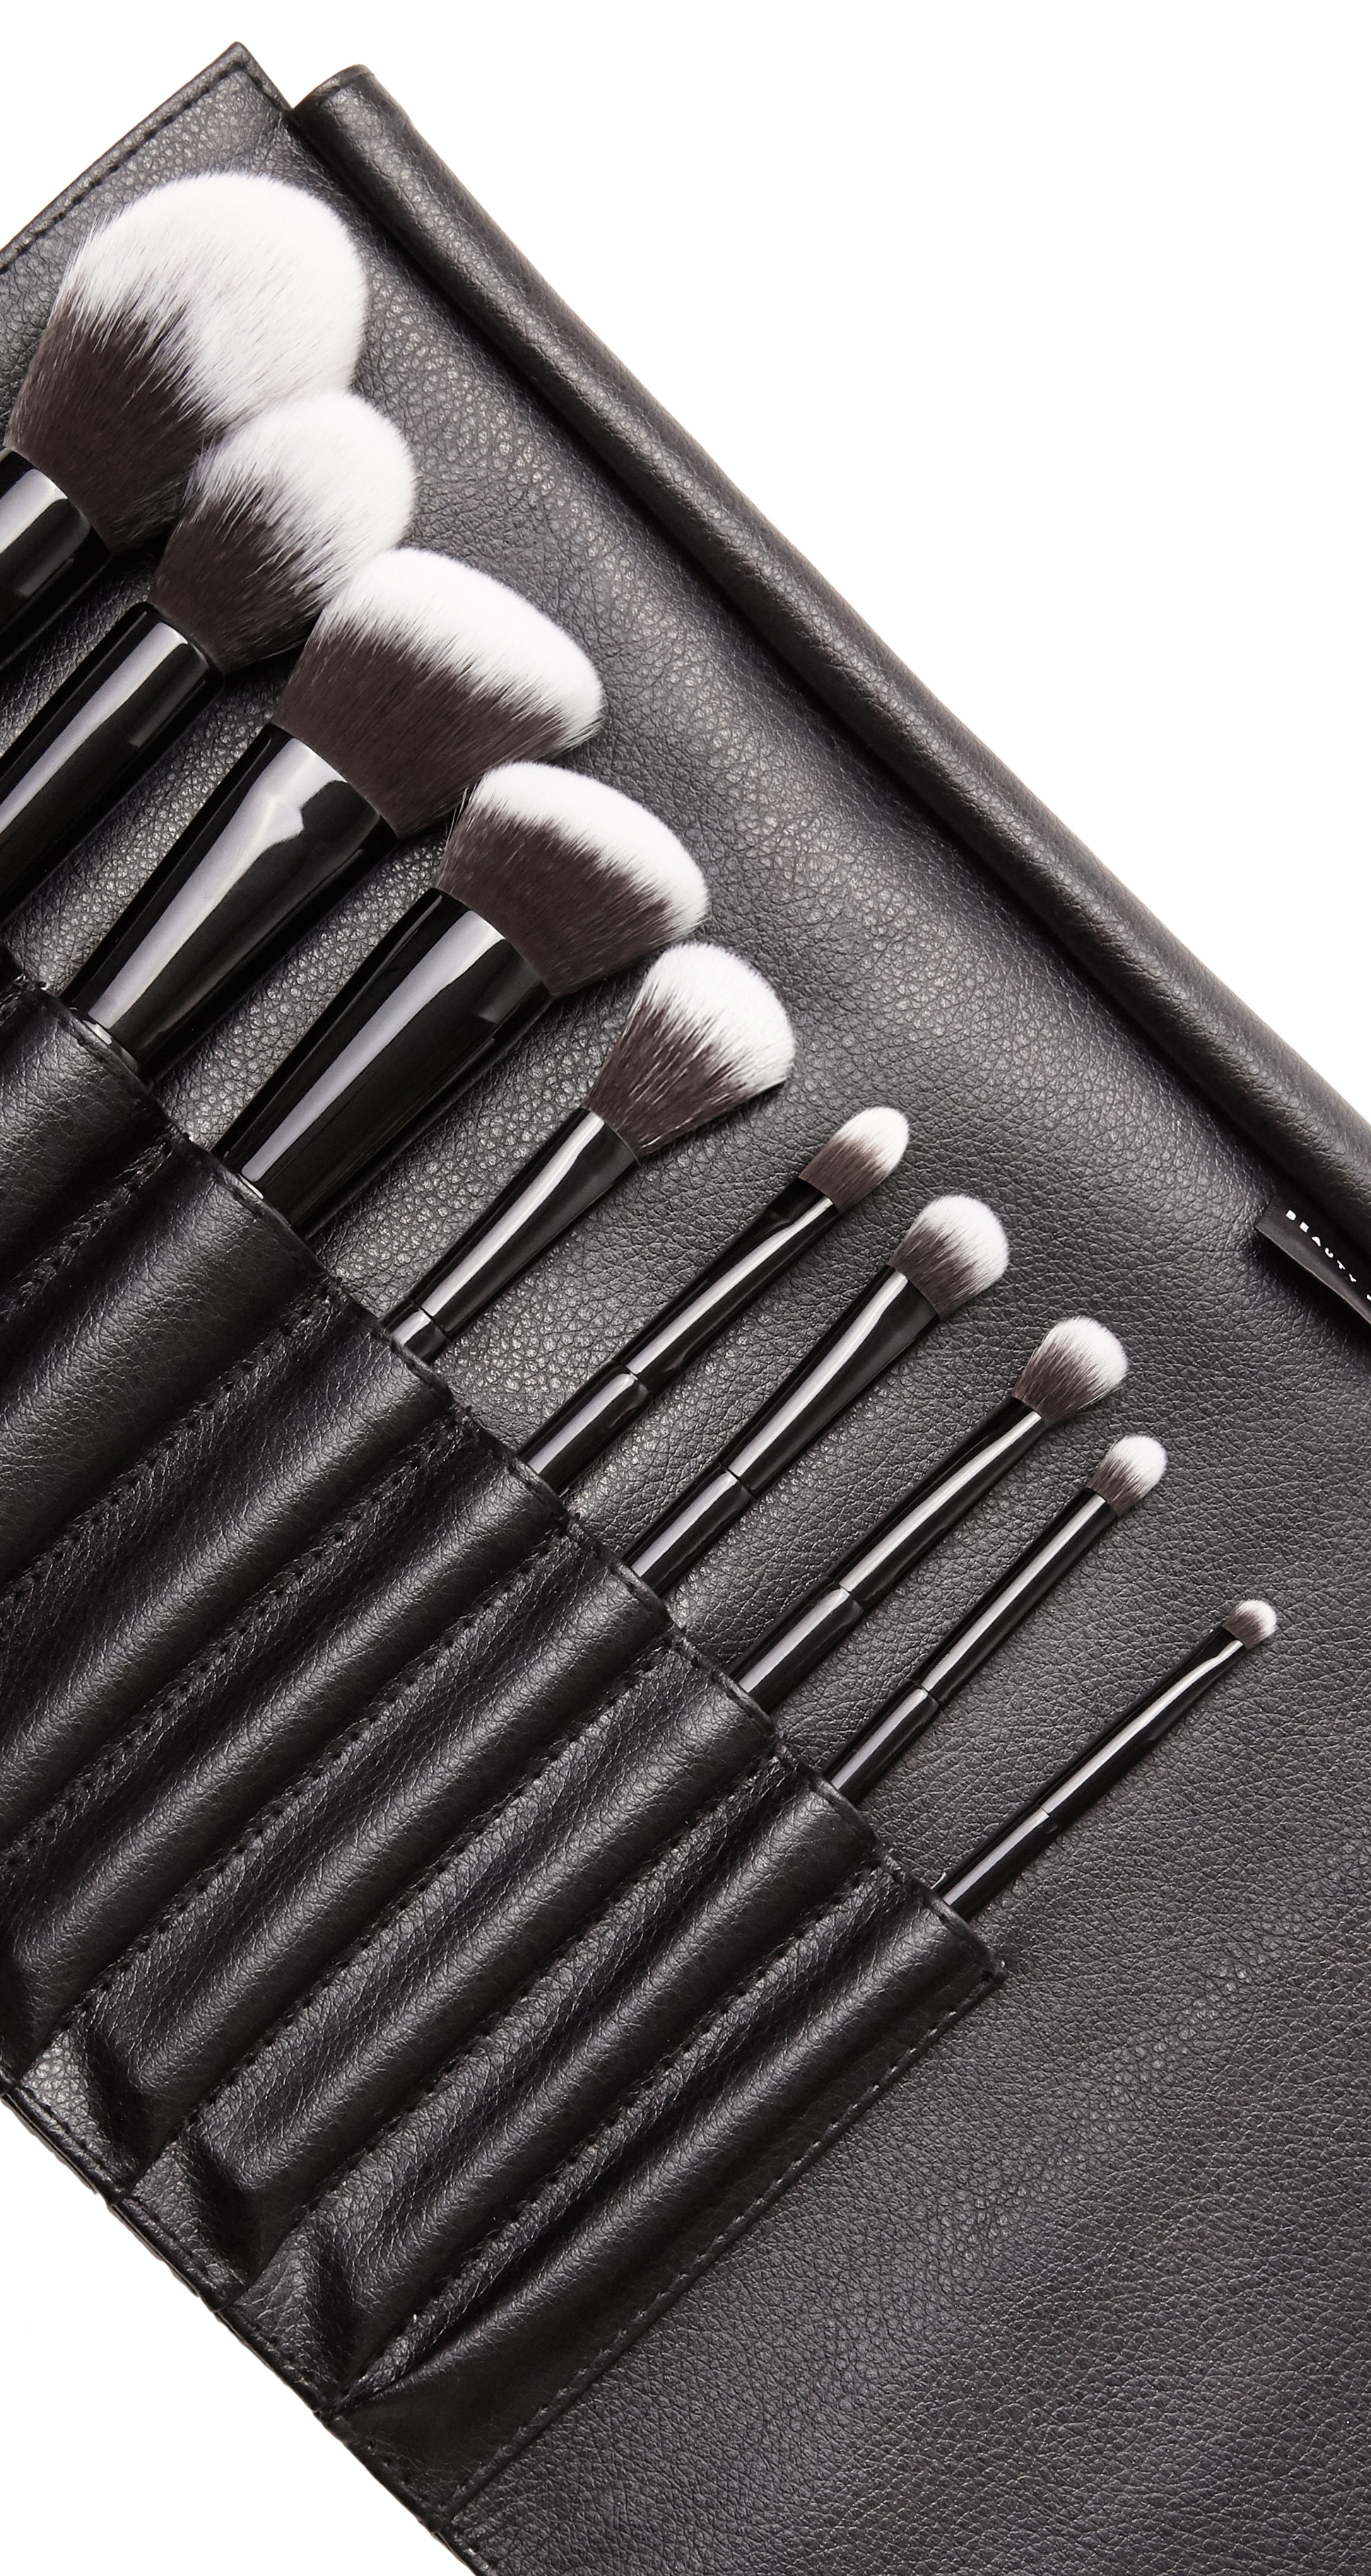 Shop Pro Deluxe Makeup Brush Collection